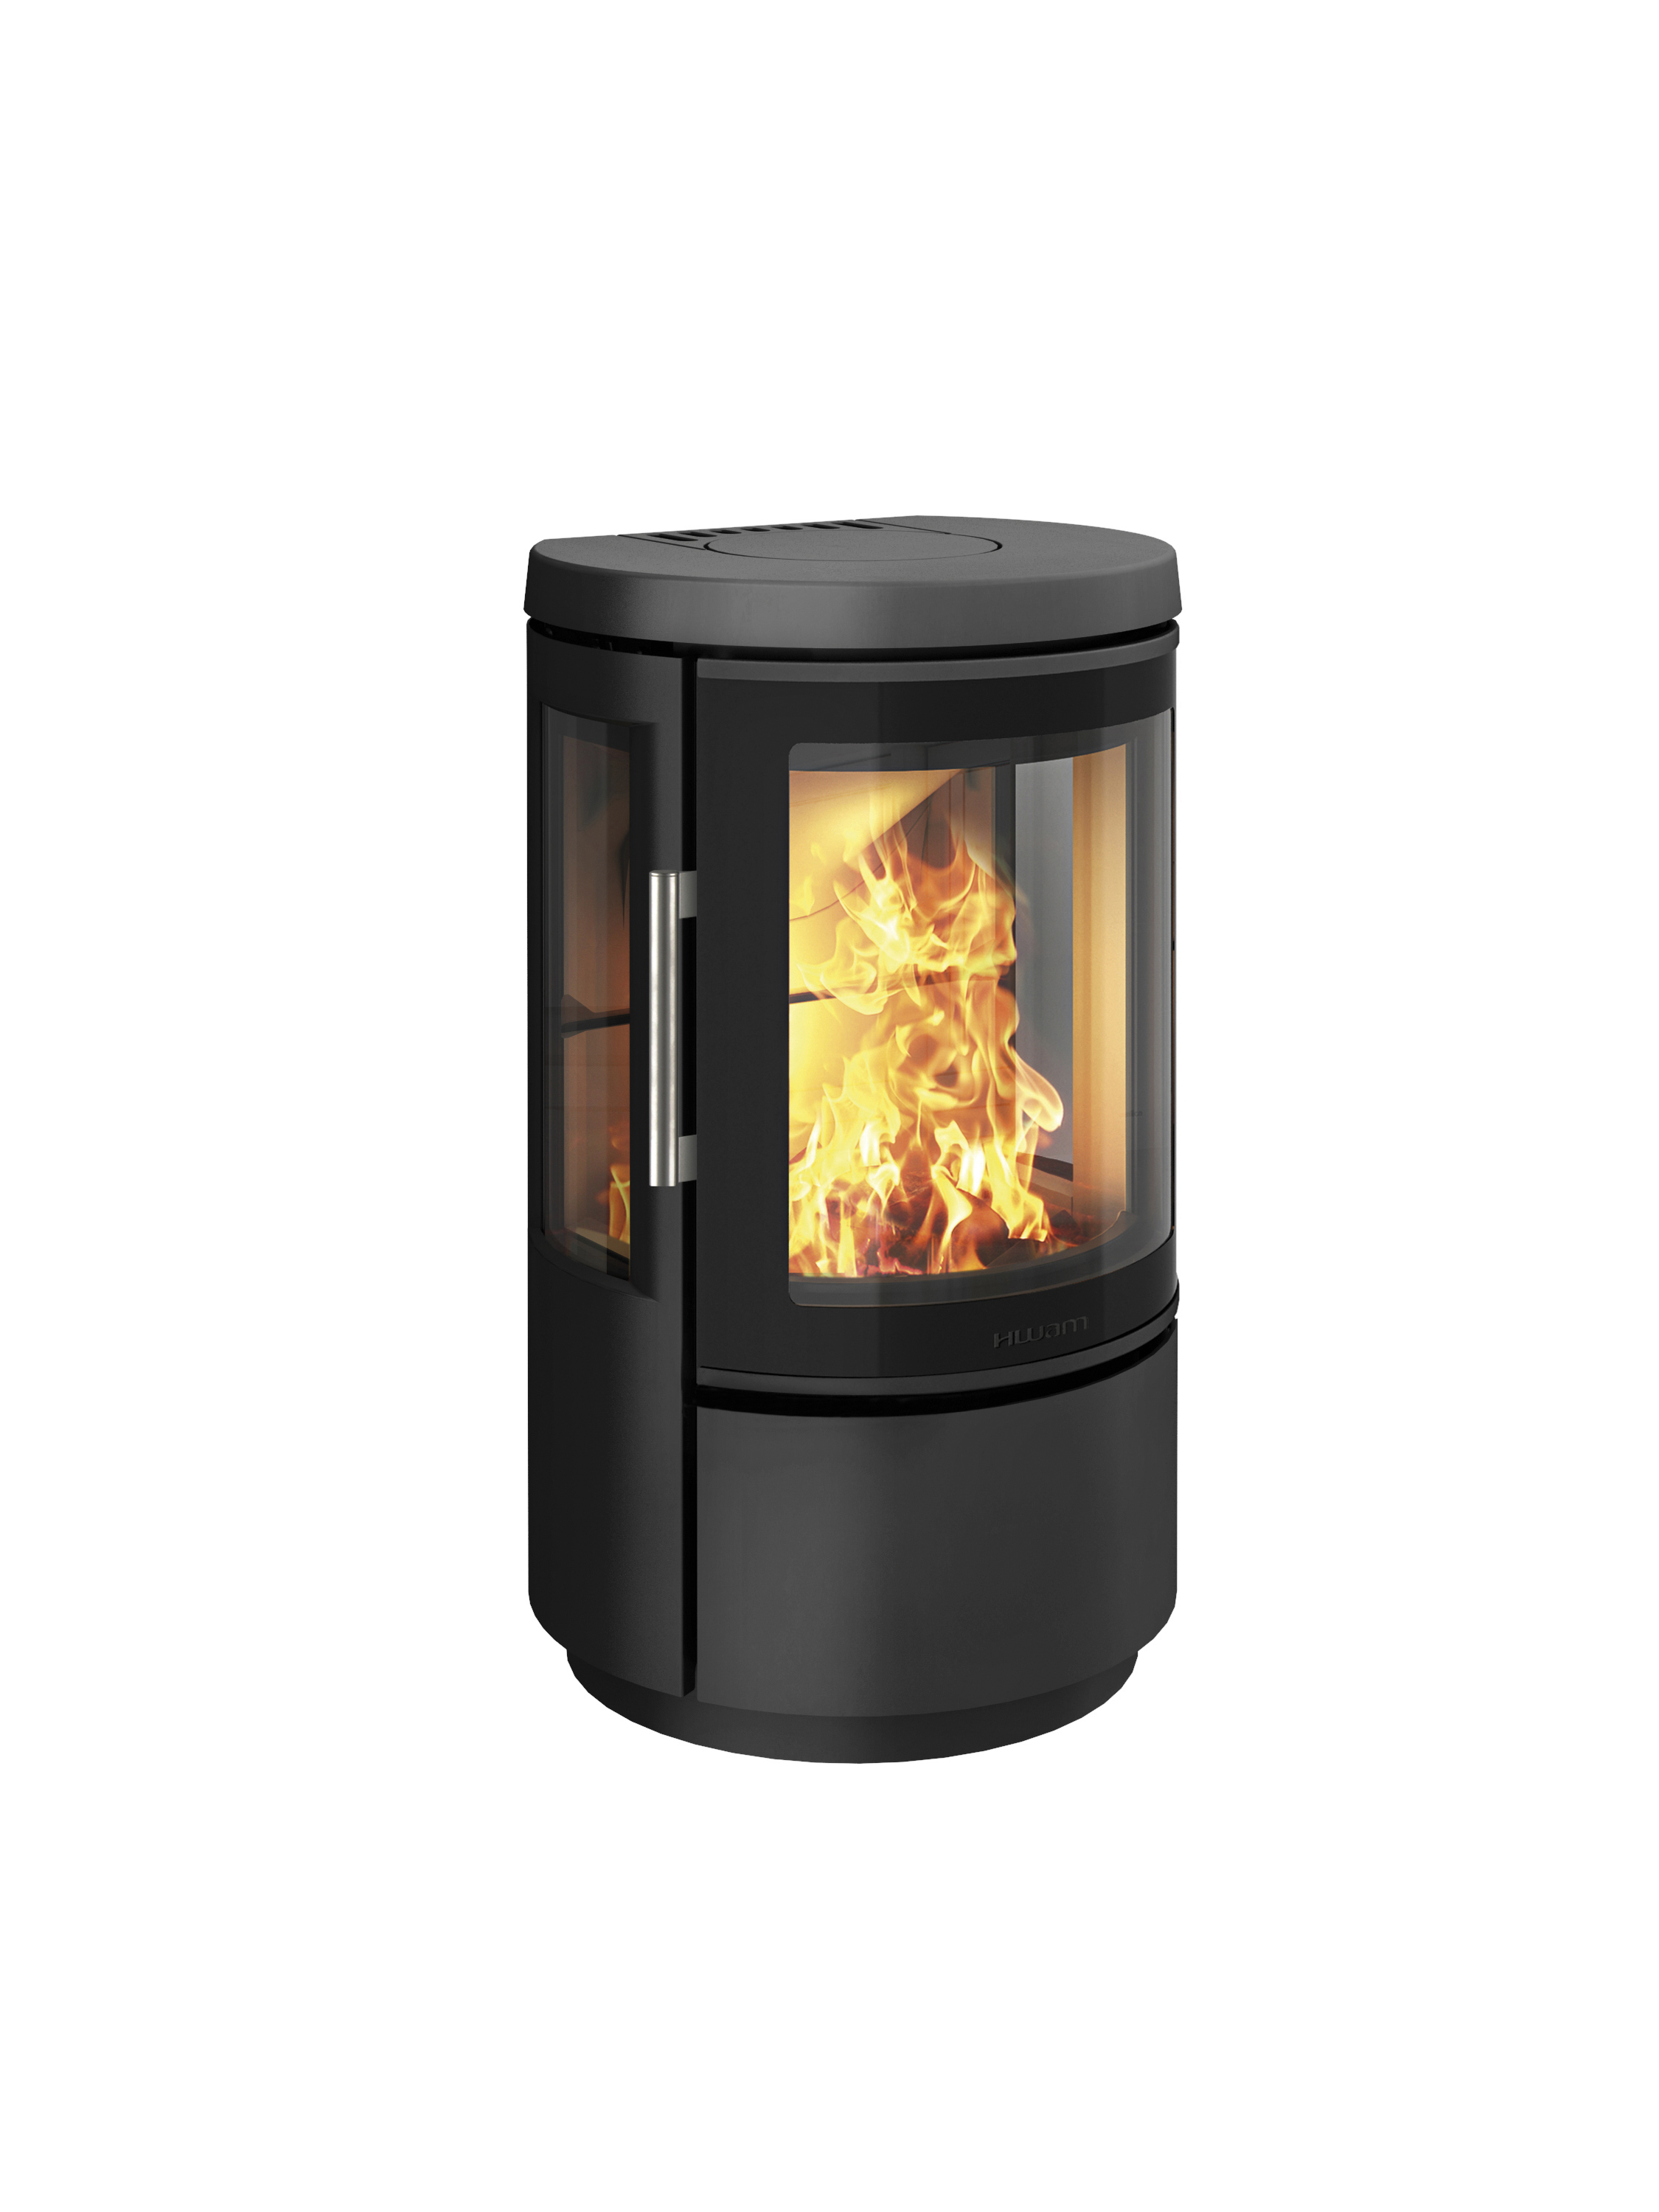 Hwam 2610 wood stove with a energy rating stoves more in north hwam 2610 wood stove with a energy rating planetlyrics Choice Image